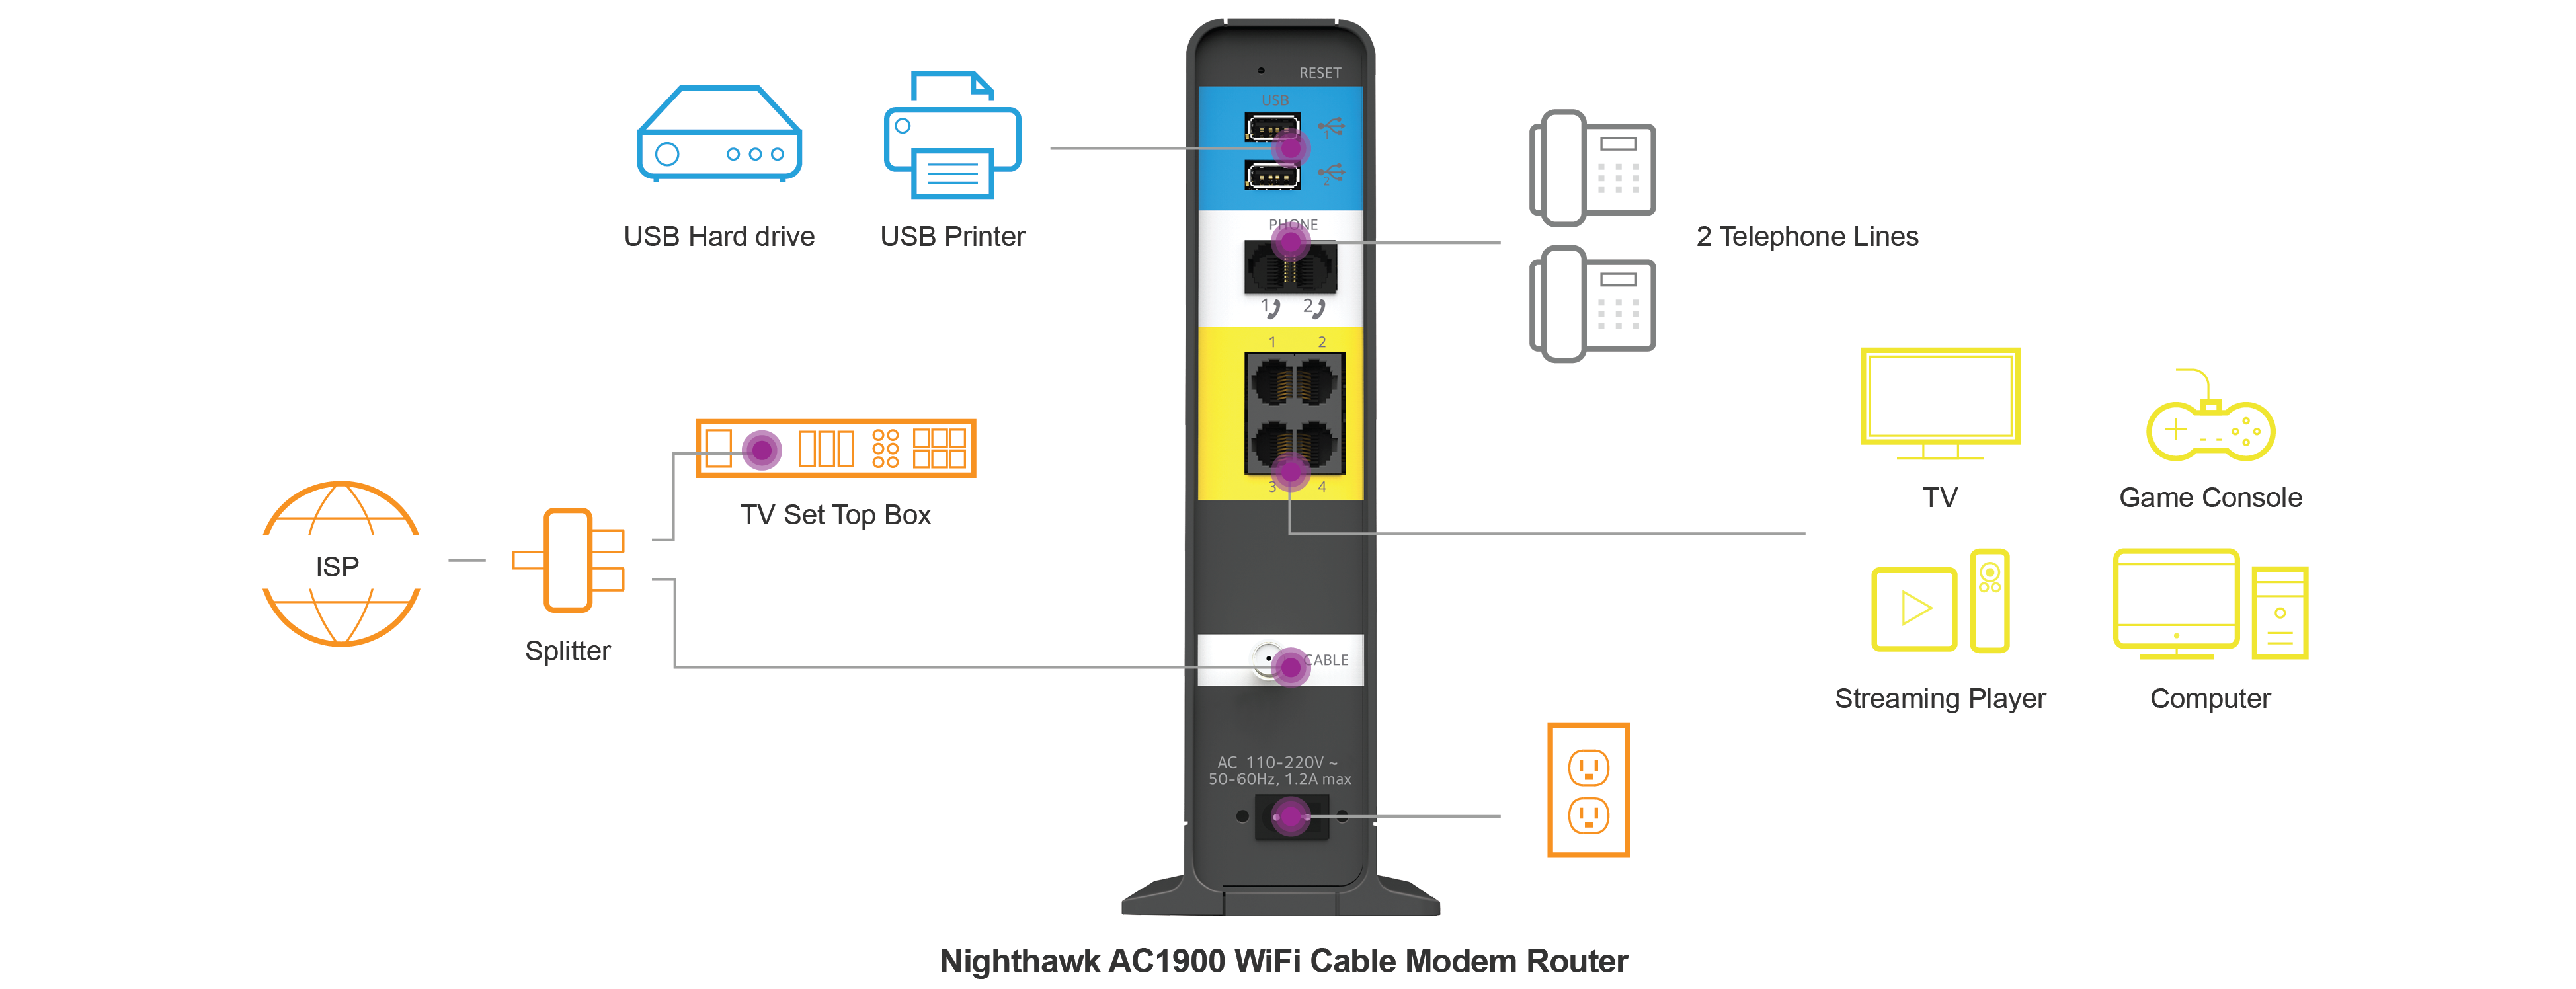 C7100v Cable Modems Routers Networking Home Netgear Motorola Box Wiring Diagram Your Nighthawk Ac1900 Modem Router With Voice Connects All Devices